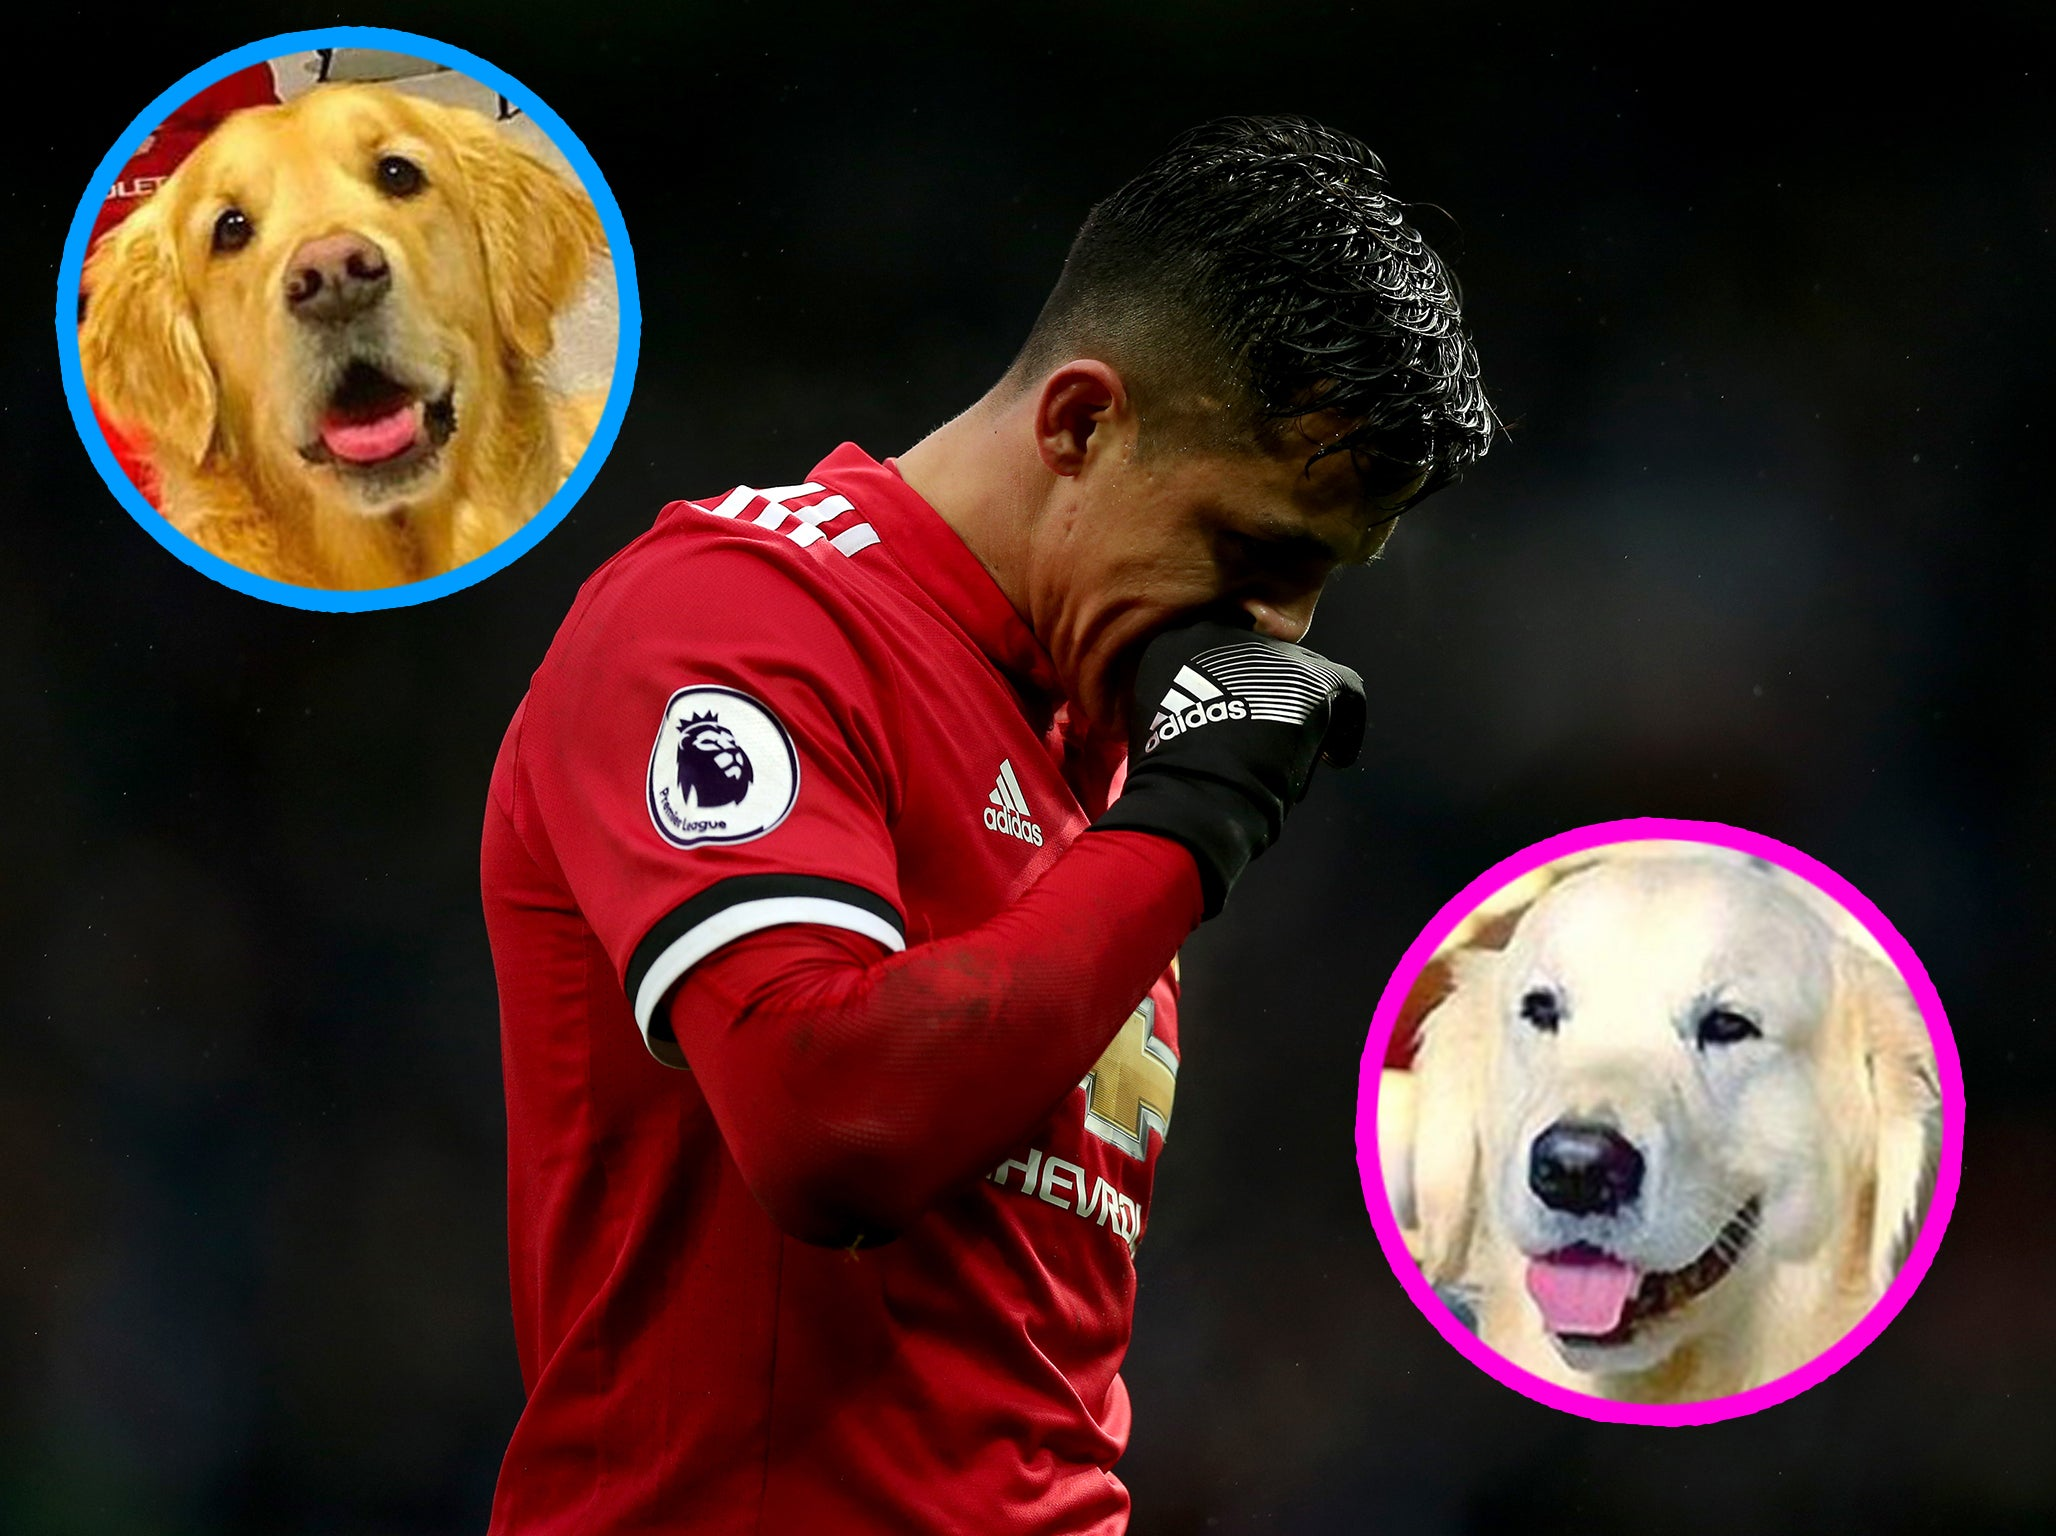 What S Wrong With Alexis Sanchez Atom And Humber Attempt To Explain His Struggles At Manchester United The Independent The Independent